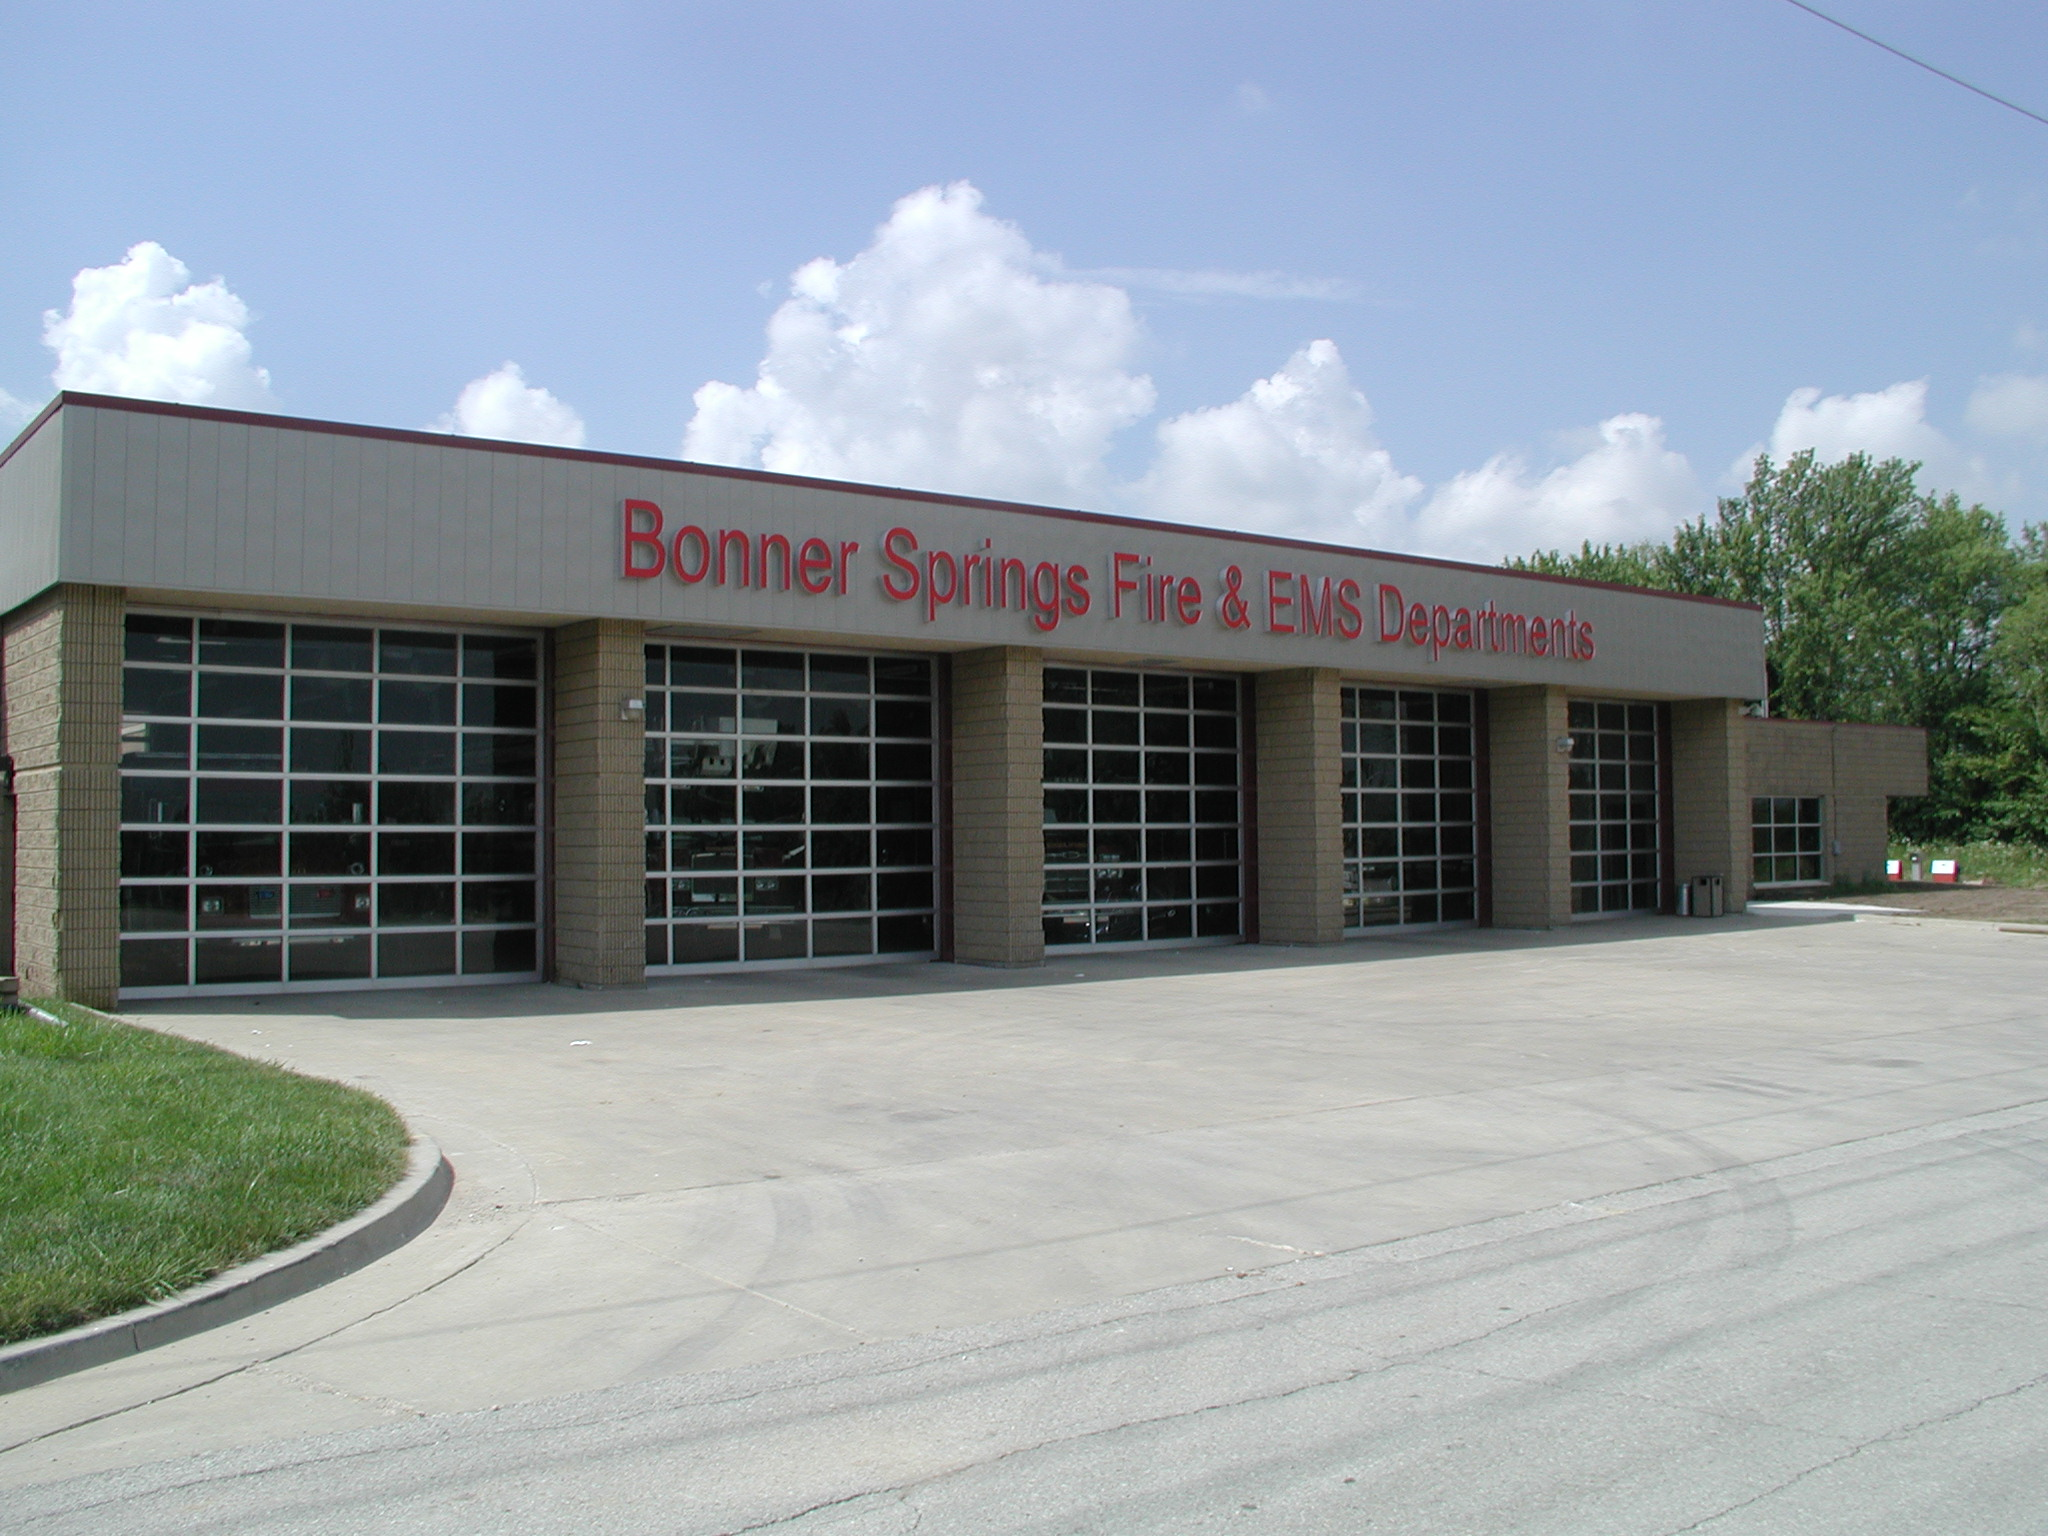 Bonner Springs Fire & EMS Departments